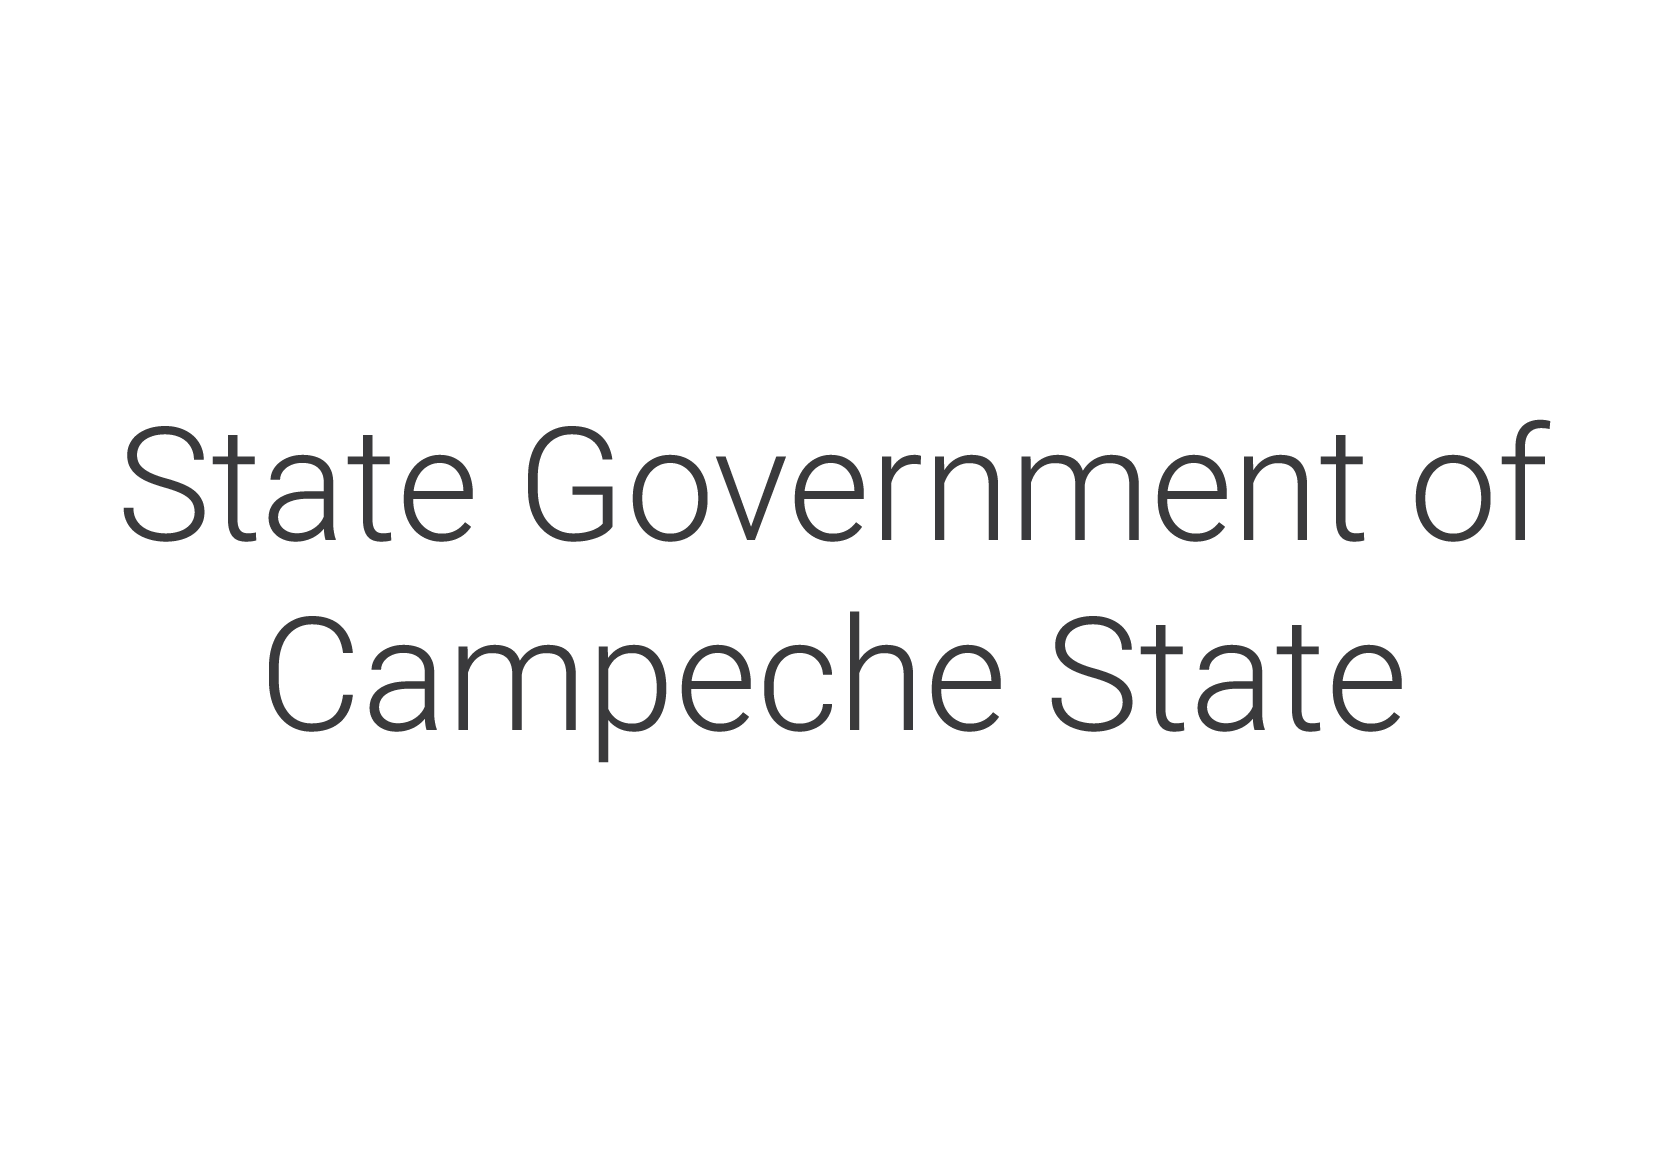 State Government of Campeche State